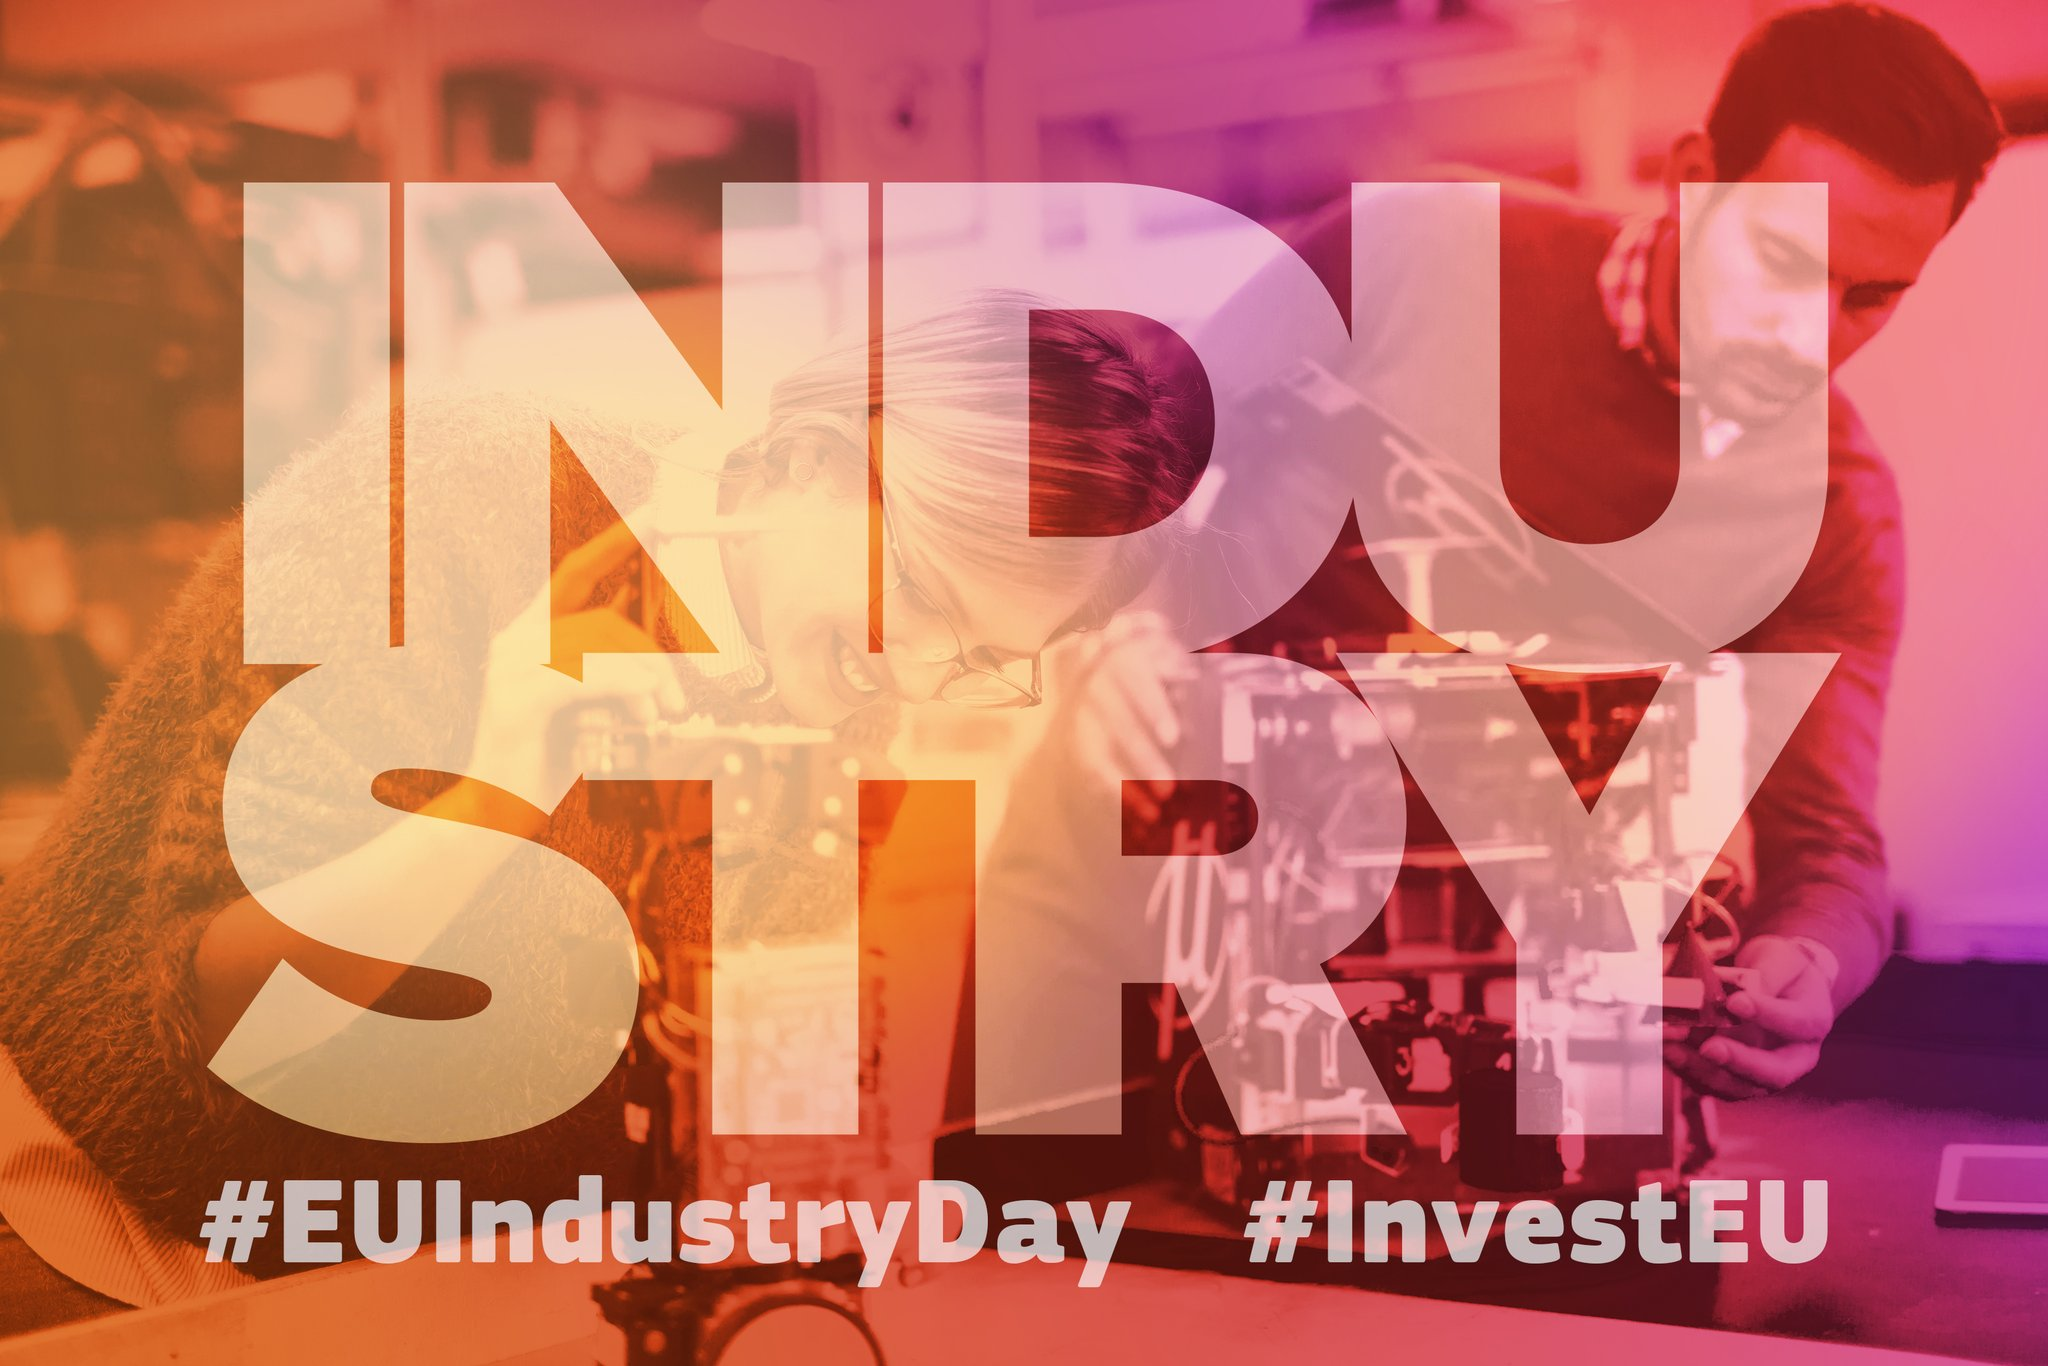 See you at #EUIndustryDay 2019